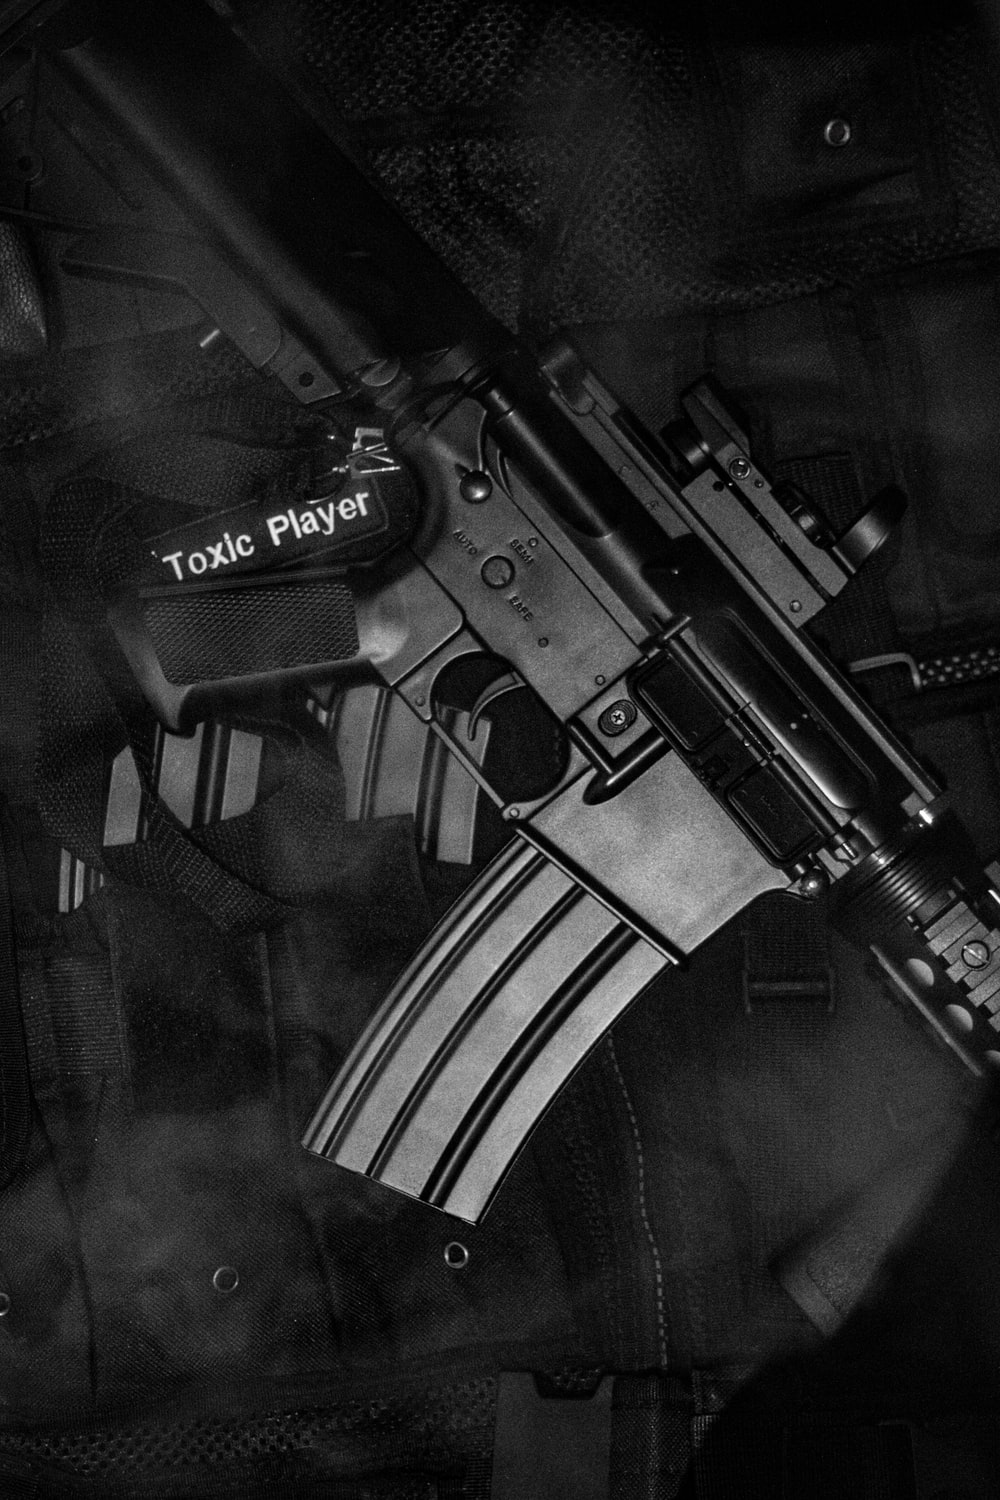 black and white rifle on black textile